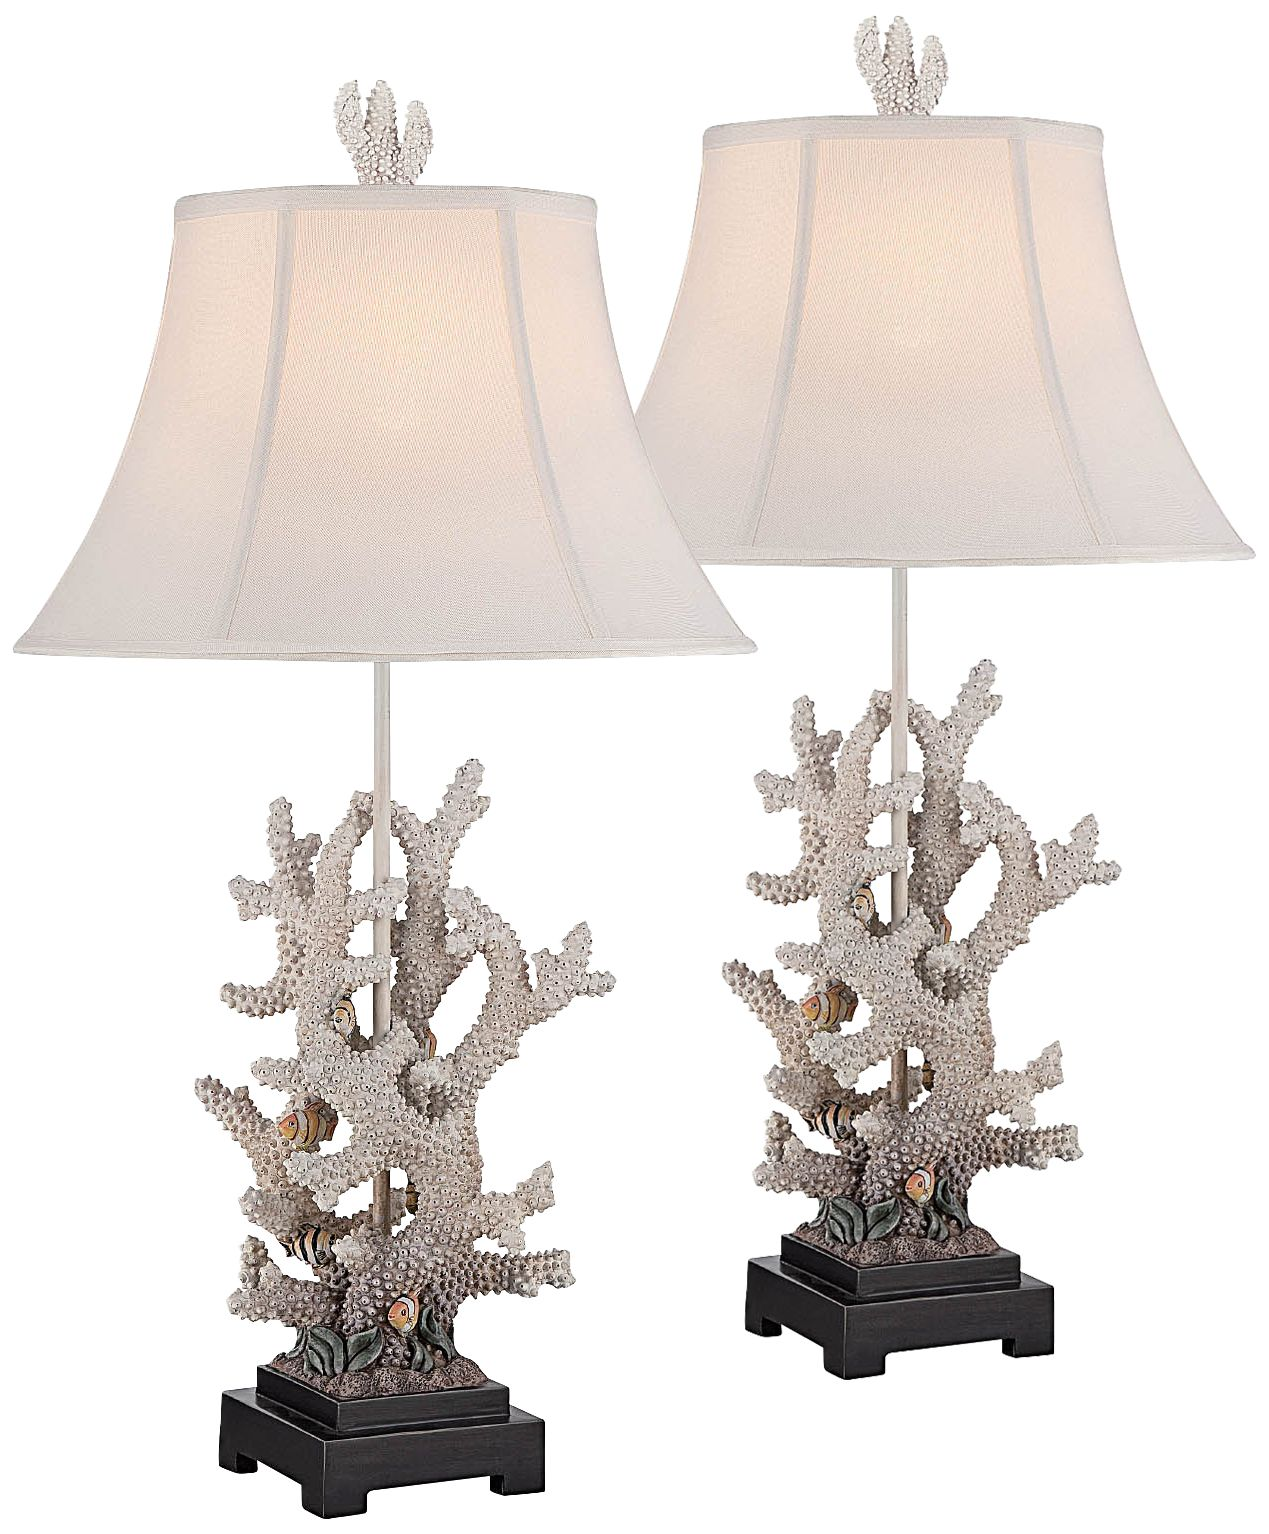 Lovely Waikiwi Tropical Fish Table Lamp Set Of 2